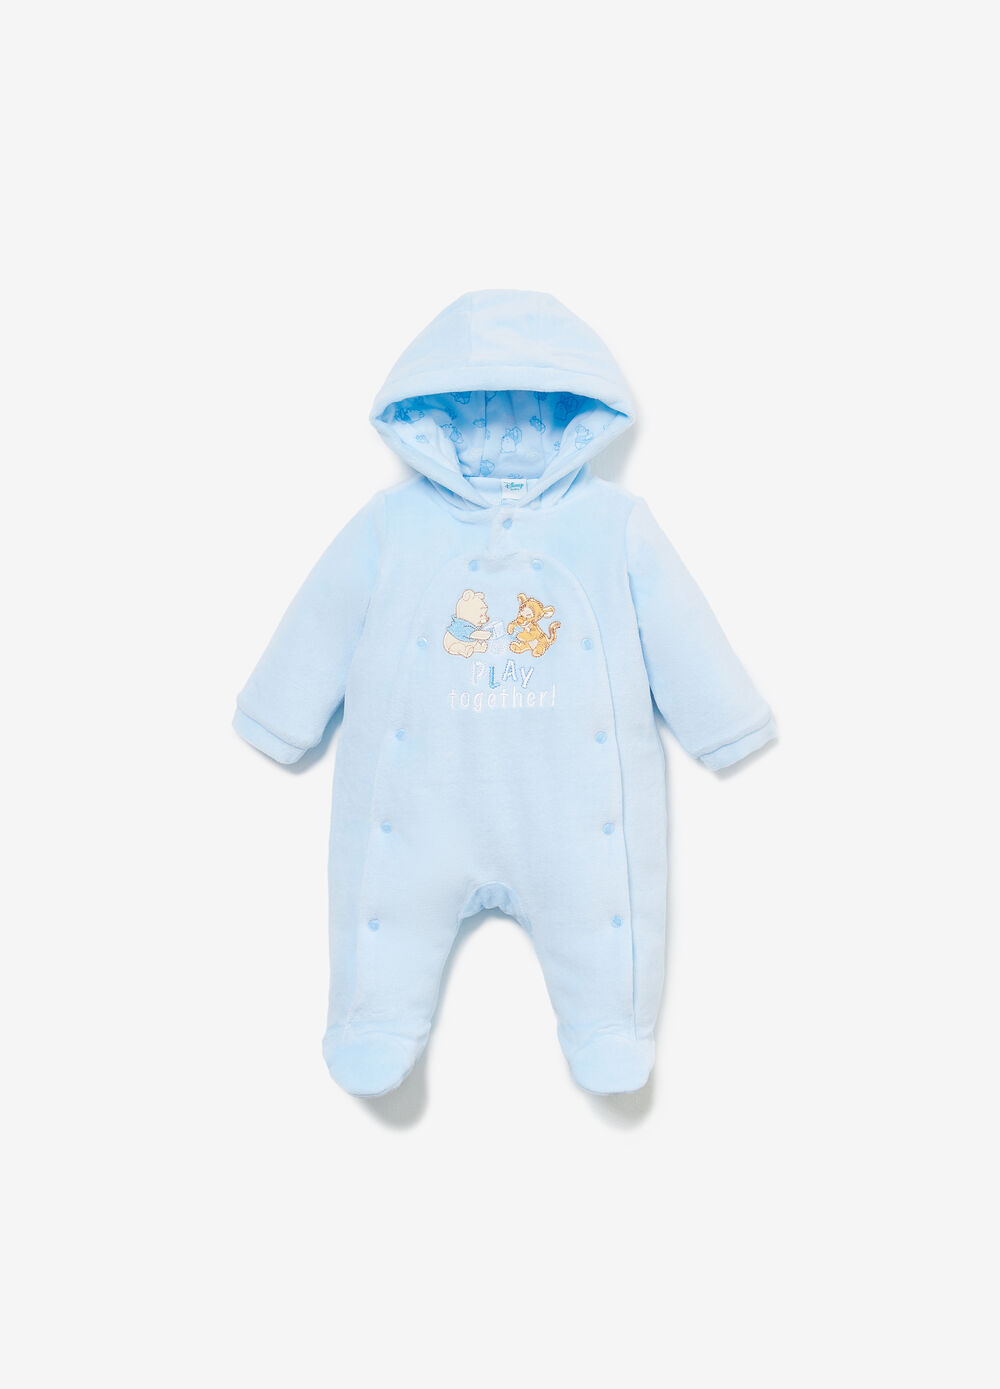 Romper suit with Winnie the Pooh patch